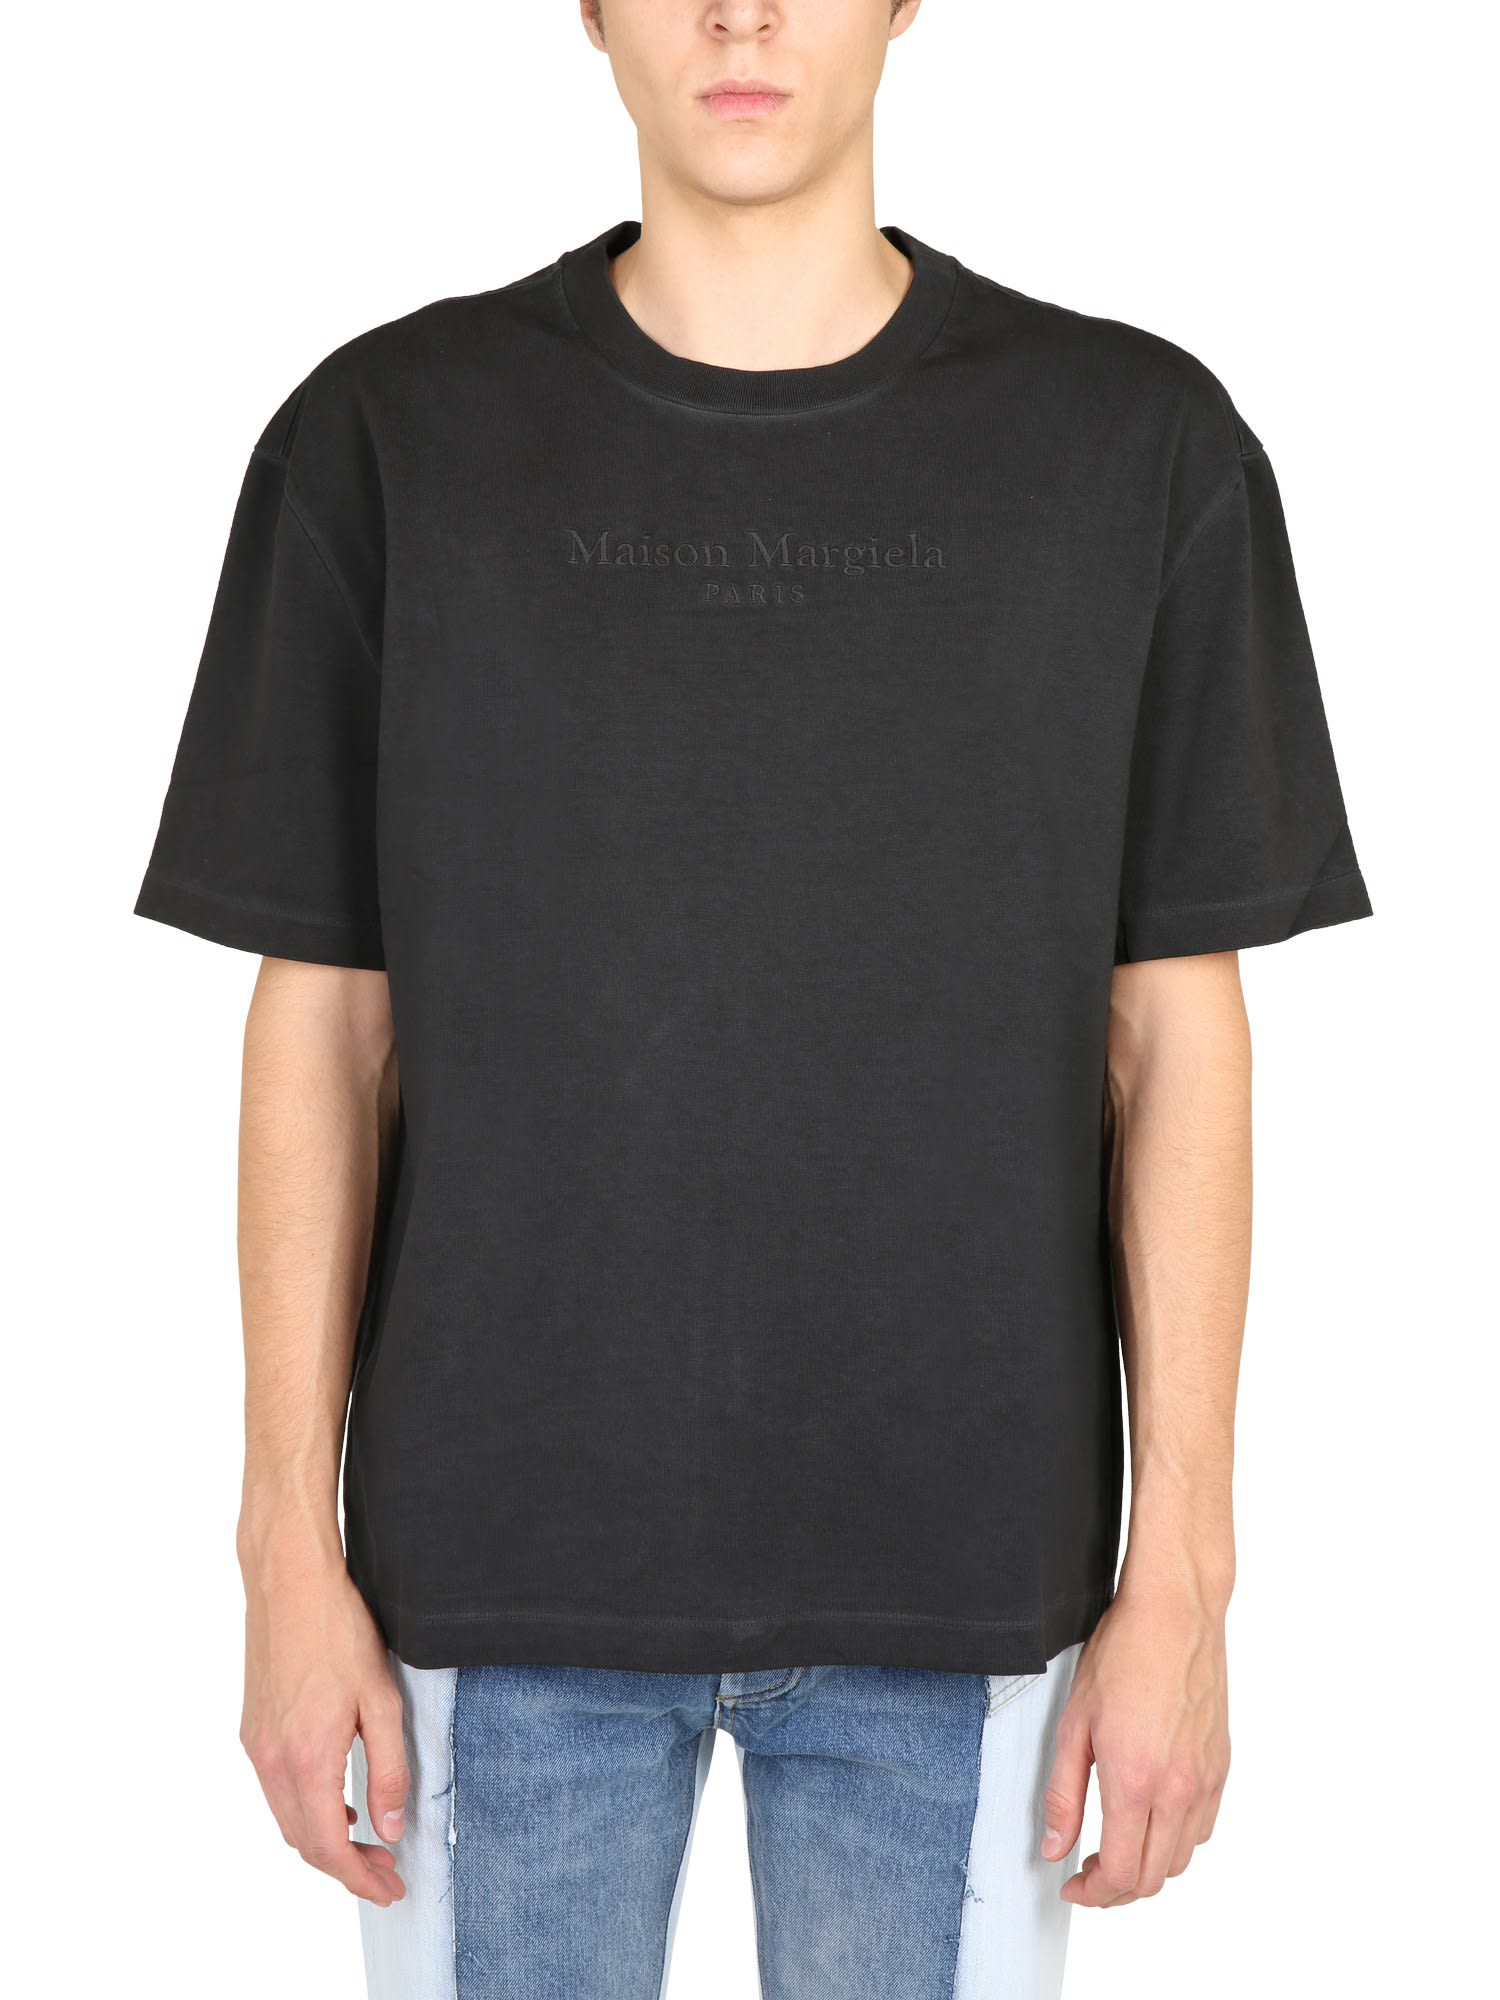 Maison Margiela CREW NECK T-SHIRT